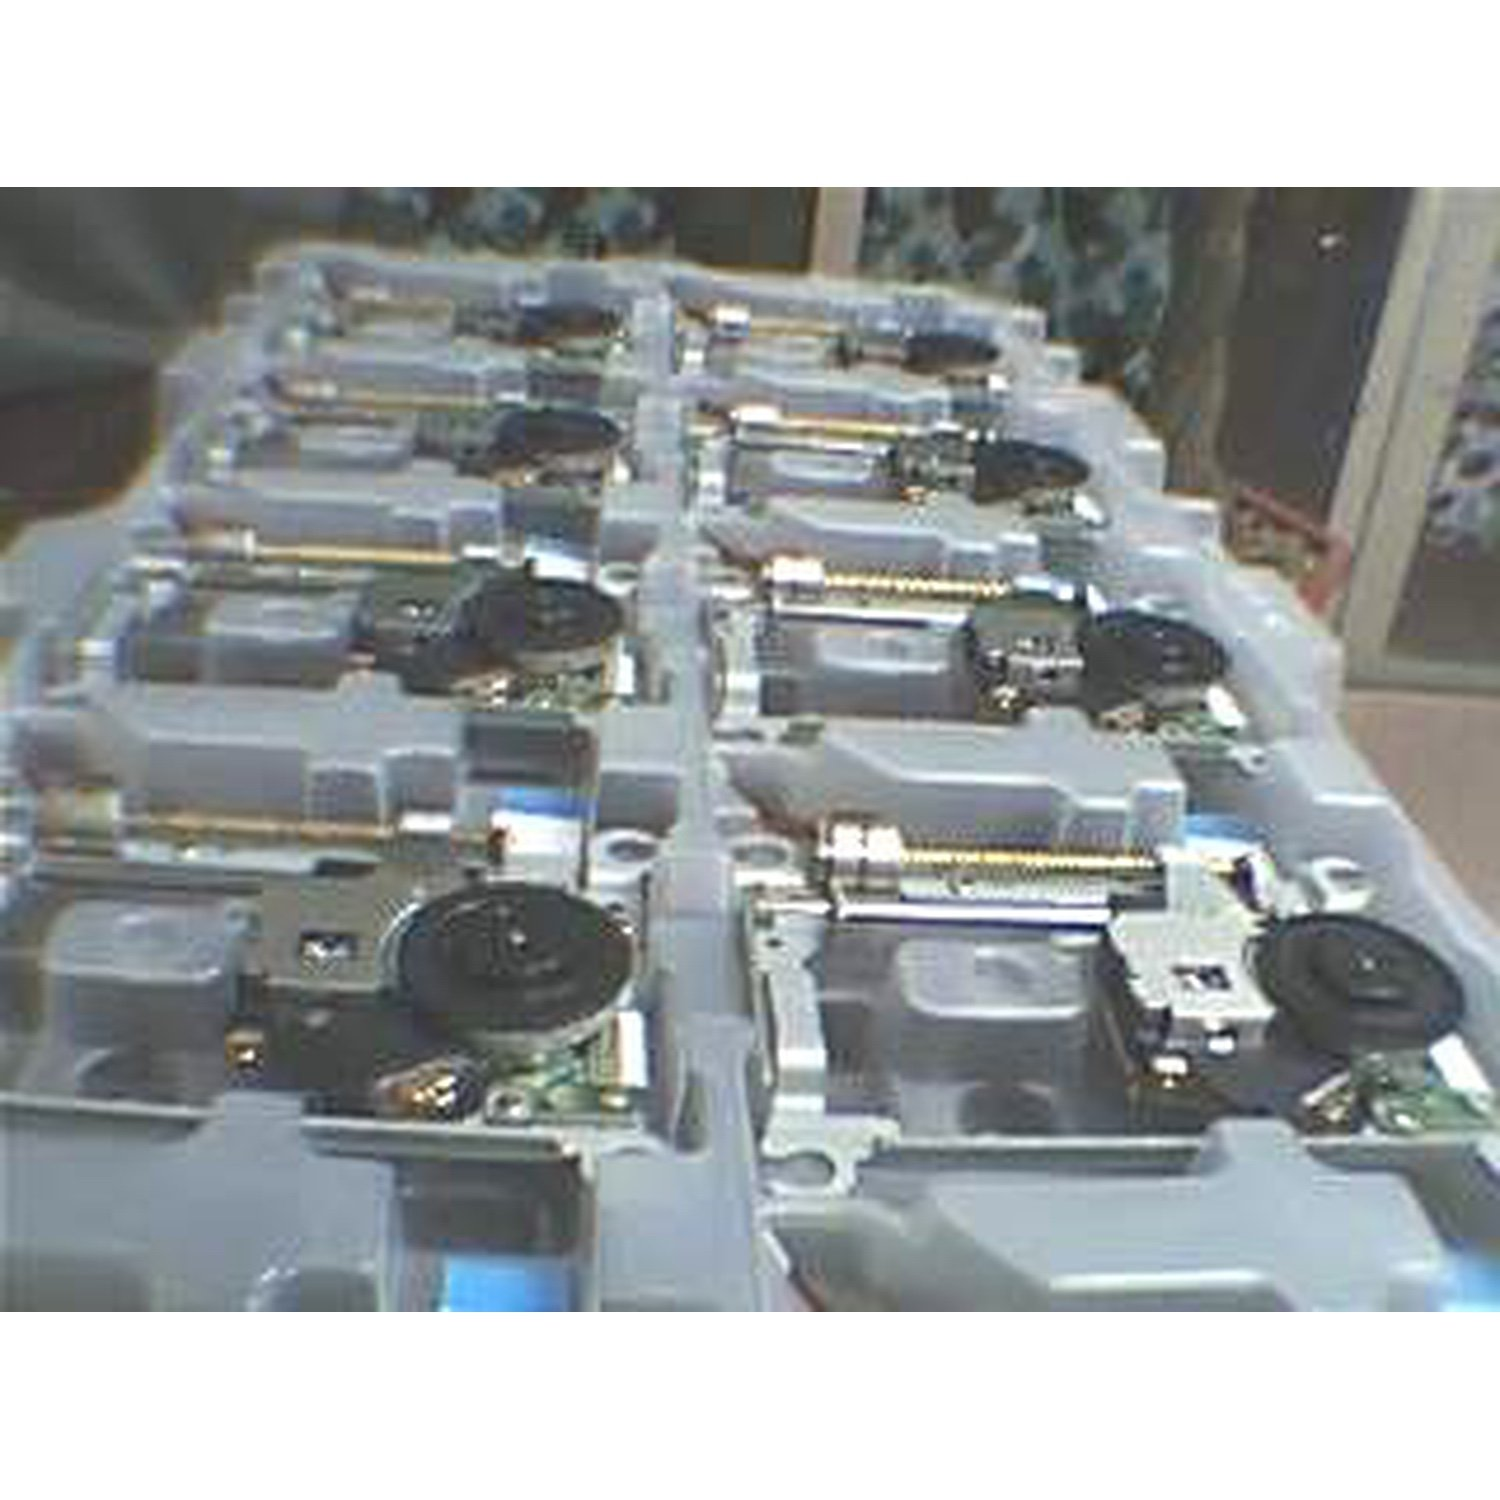 FULL OPTICAL BLOCK REFURBISHED (PVR802) PSTWO m90p motherboard systemboard 71y5975 refurbished